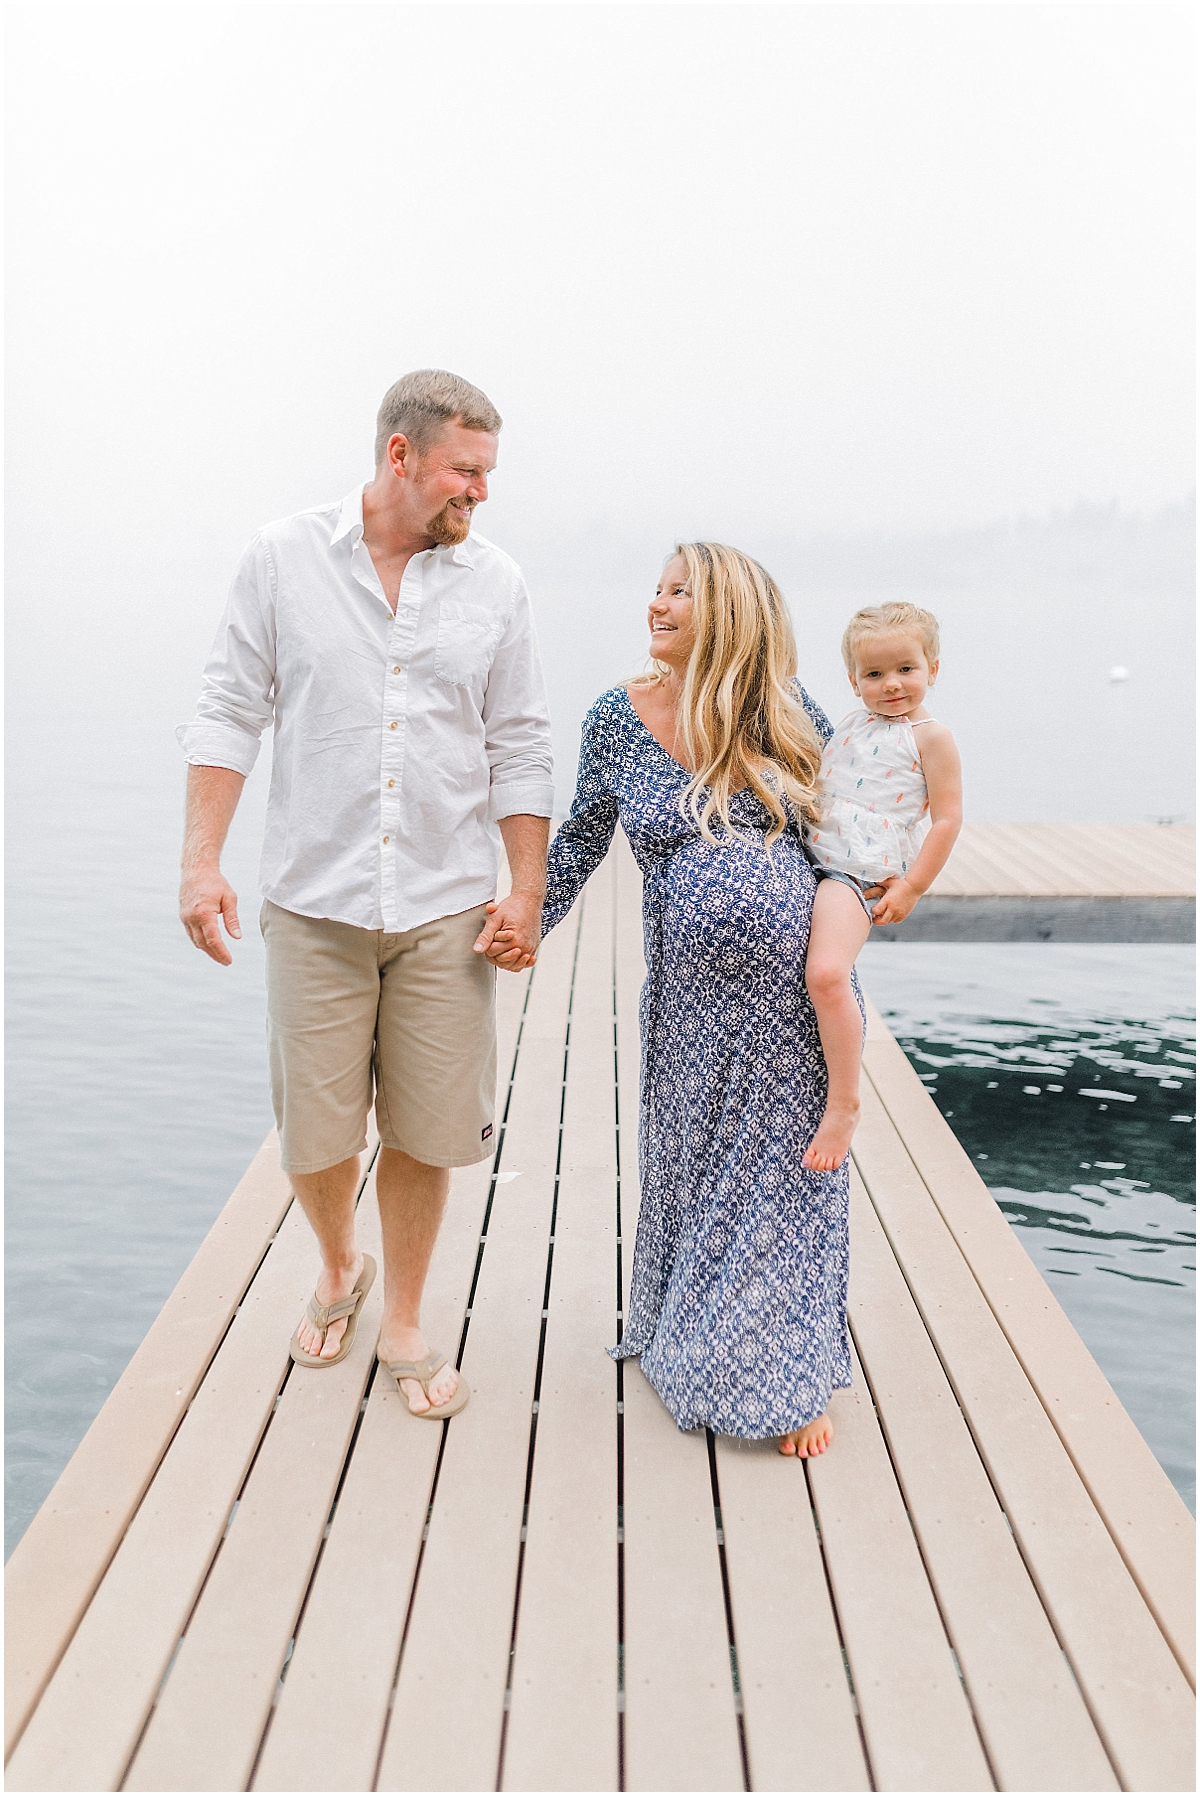 Emma Rose Company | PNW Family Portrait Photographer | Light and Airy Photography Style | What to Wear to Family Pictures | Kindred Presets | Lake Chelan Wedding Portrait Photographer_0099.jpg